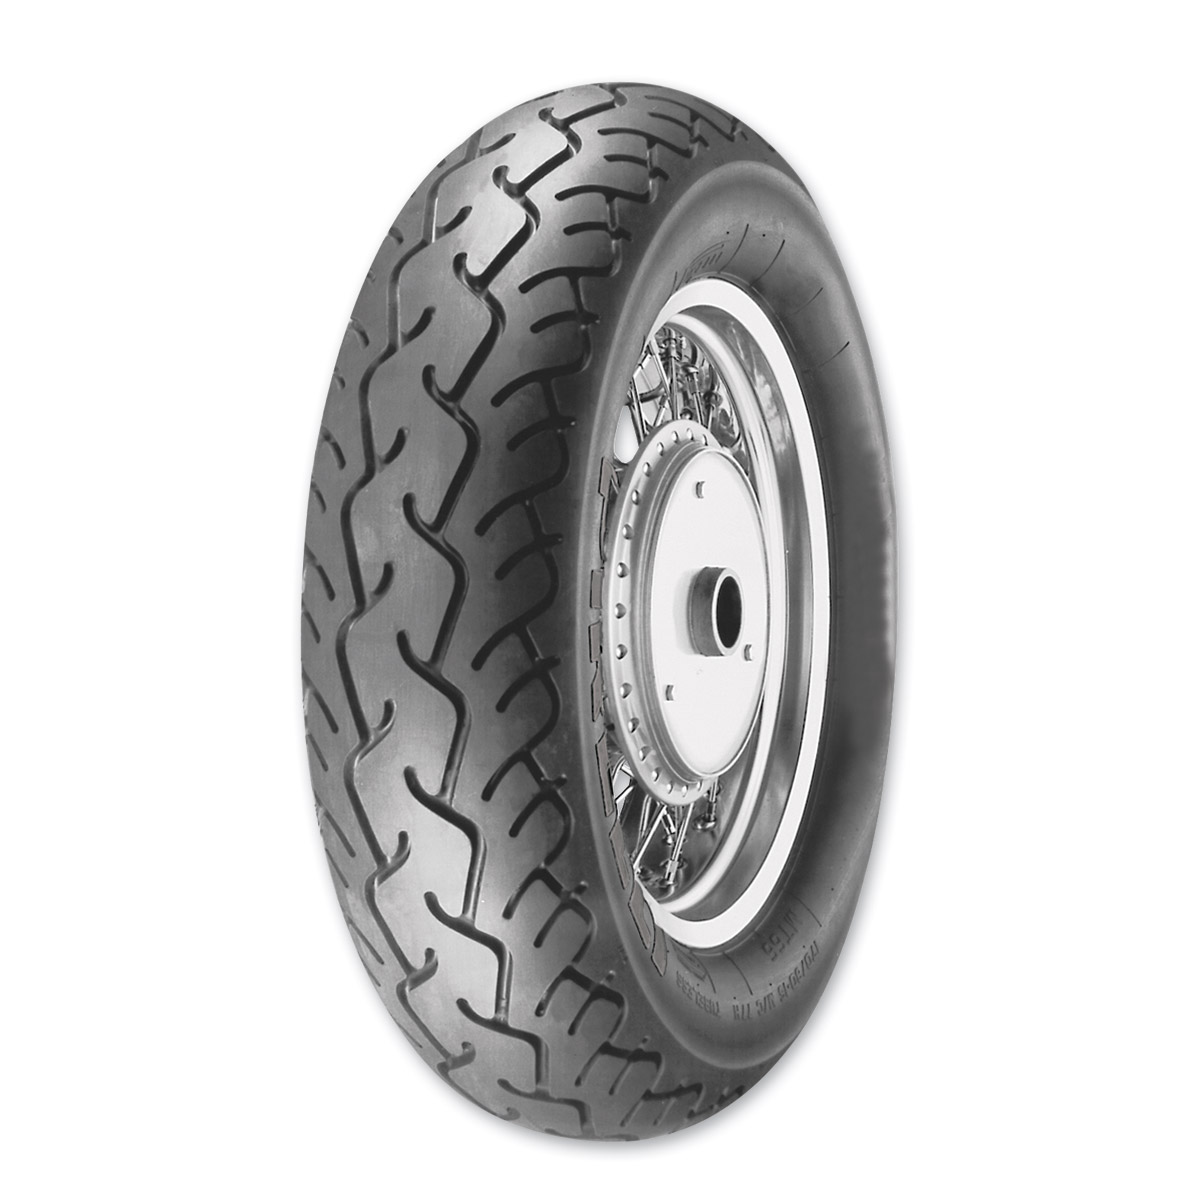 Pirelli MT66 Route 170/80-15 Rear Tire